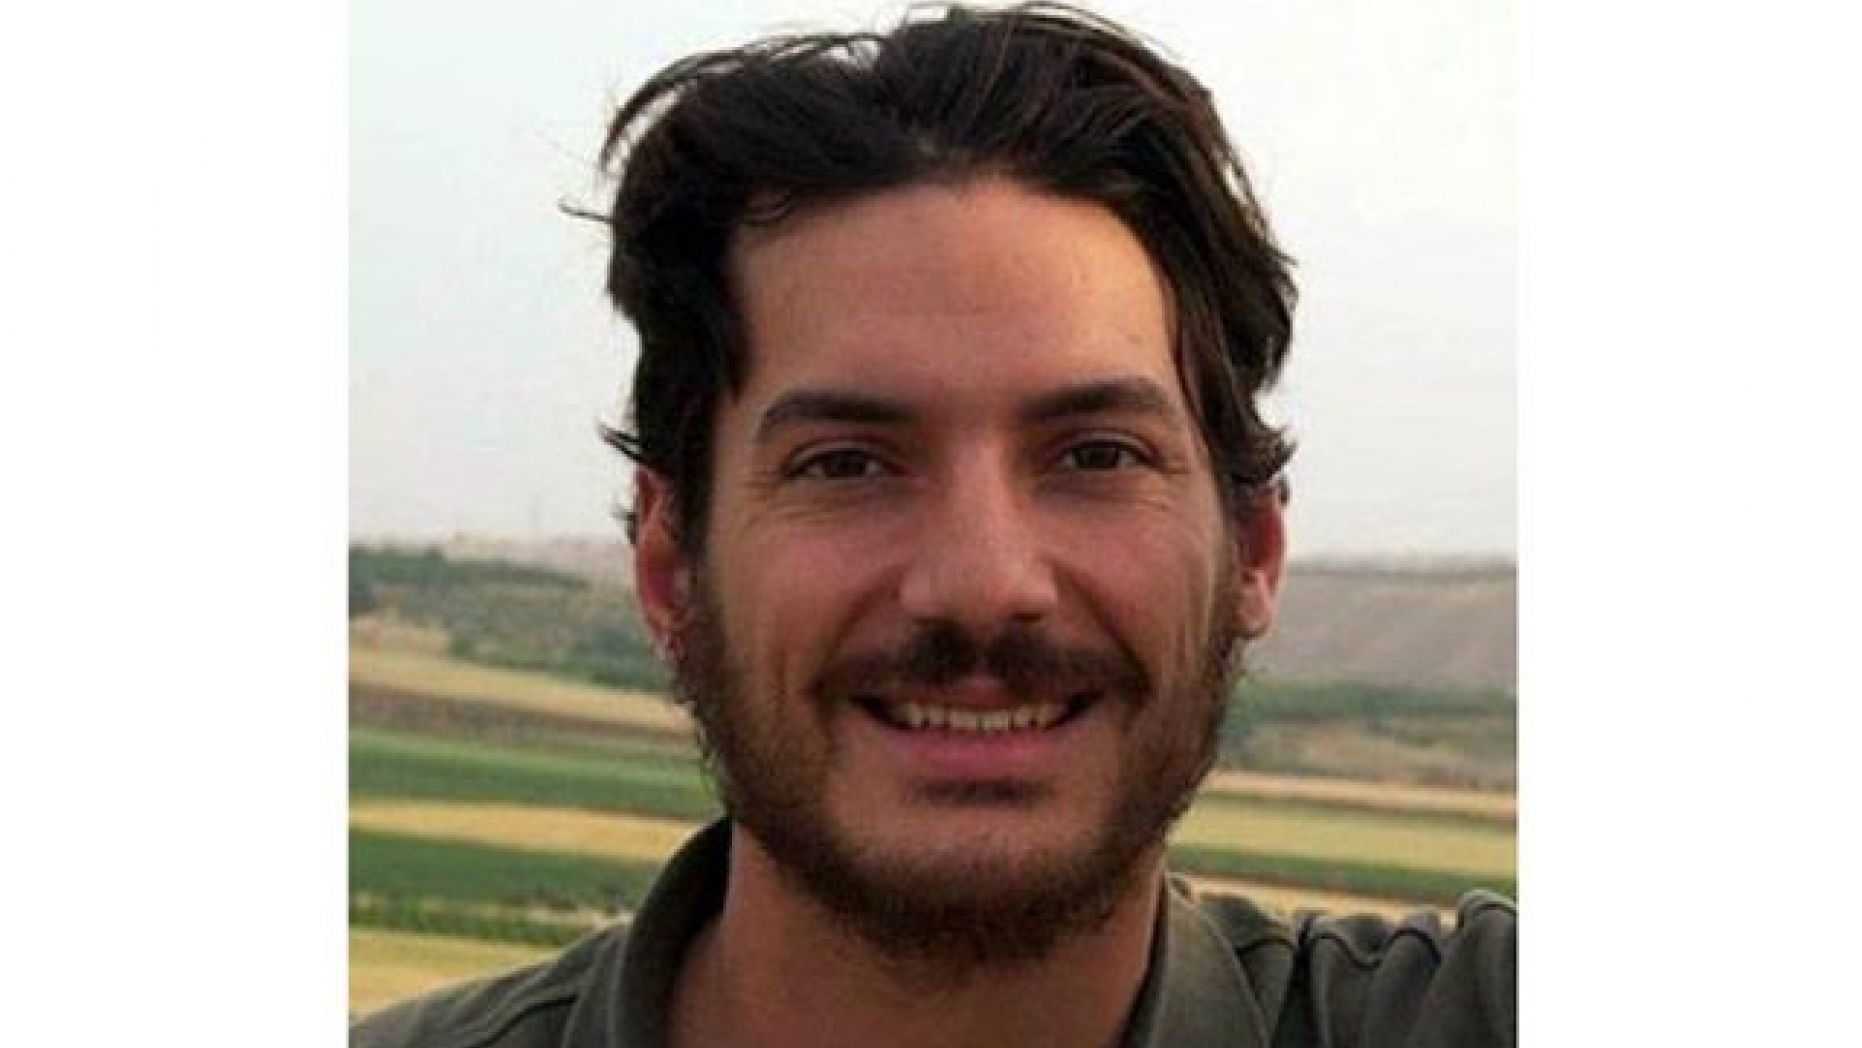 Parents of Austin Tice, journalist kidnapped in Syria, say new info suggests son still alive